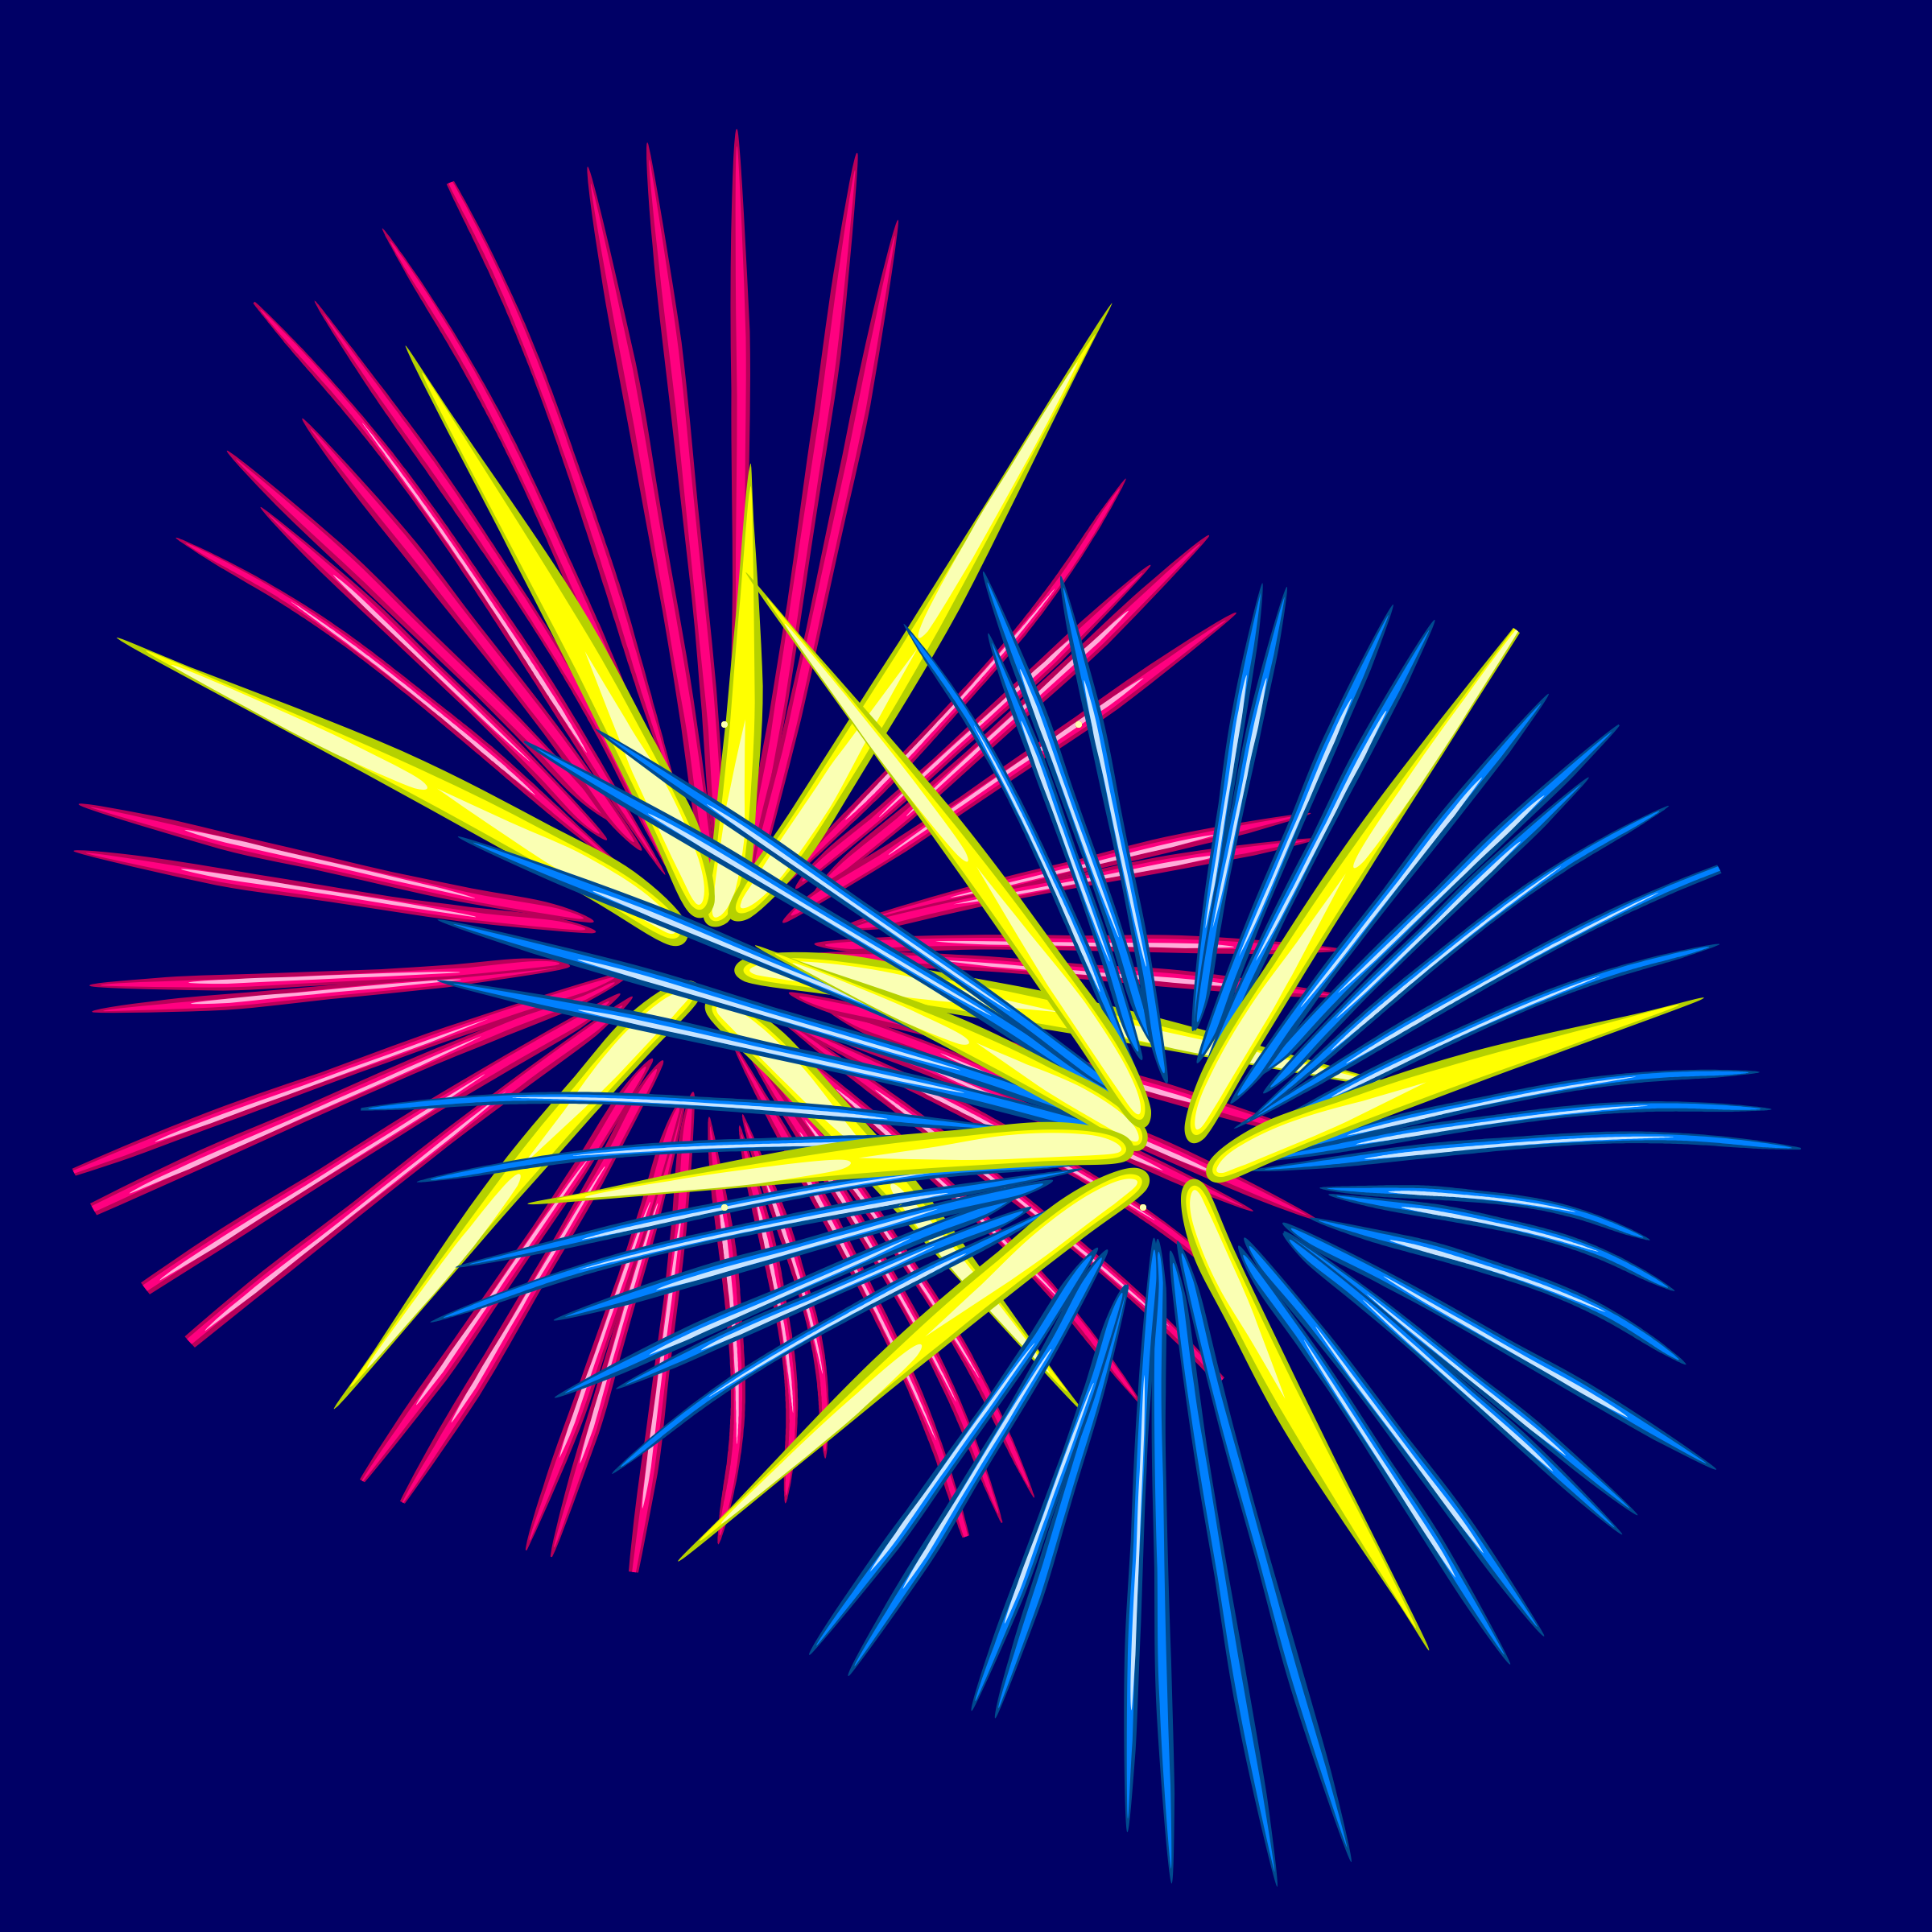 Fireworks using Image Links by JayNick